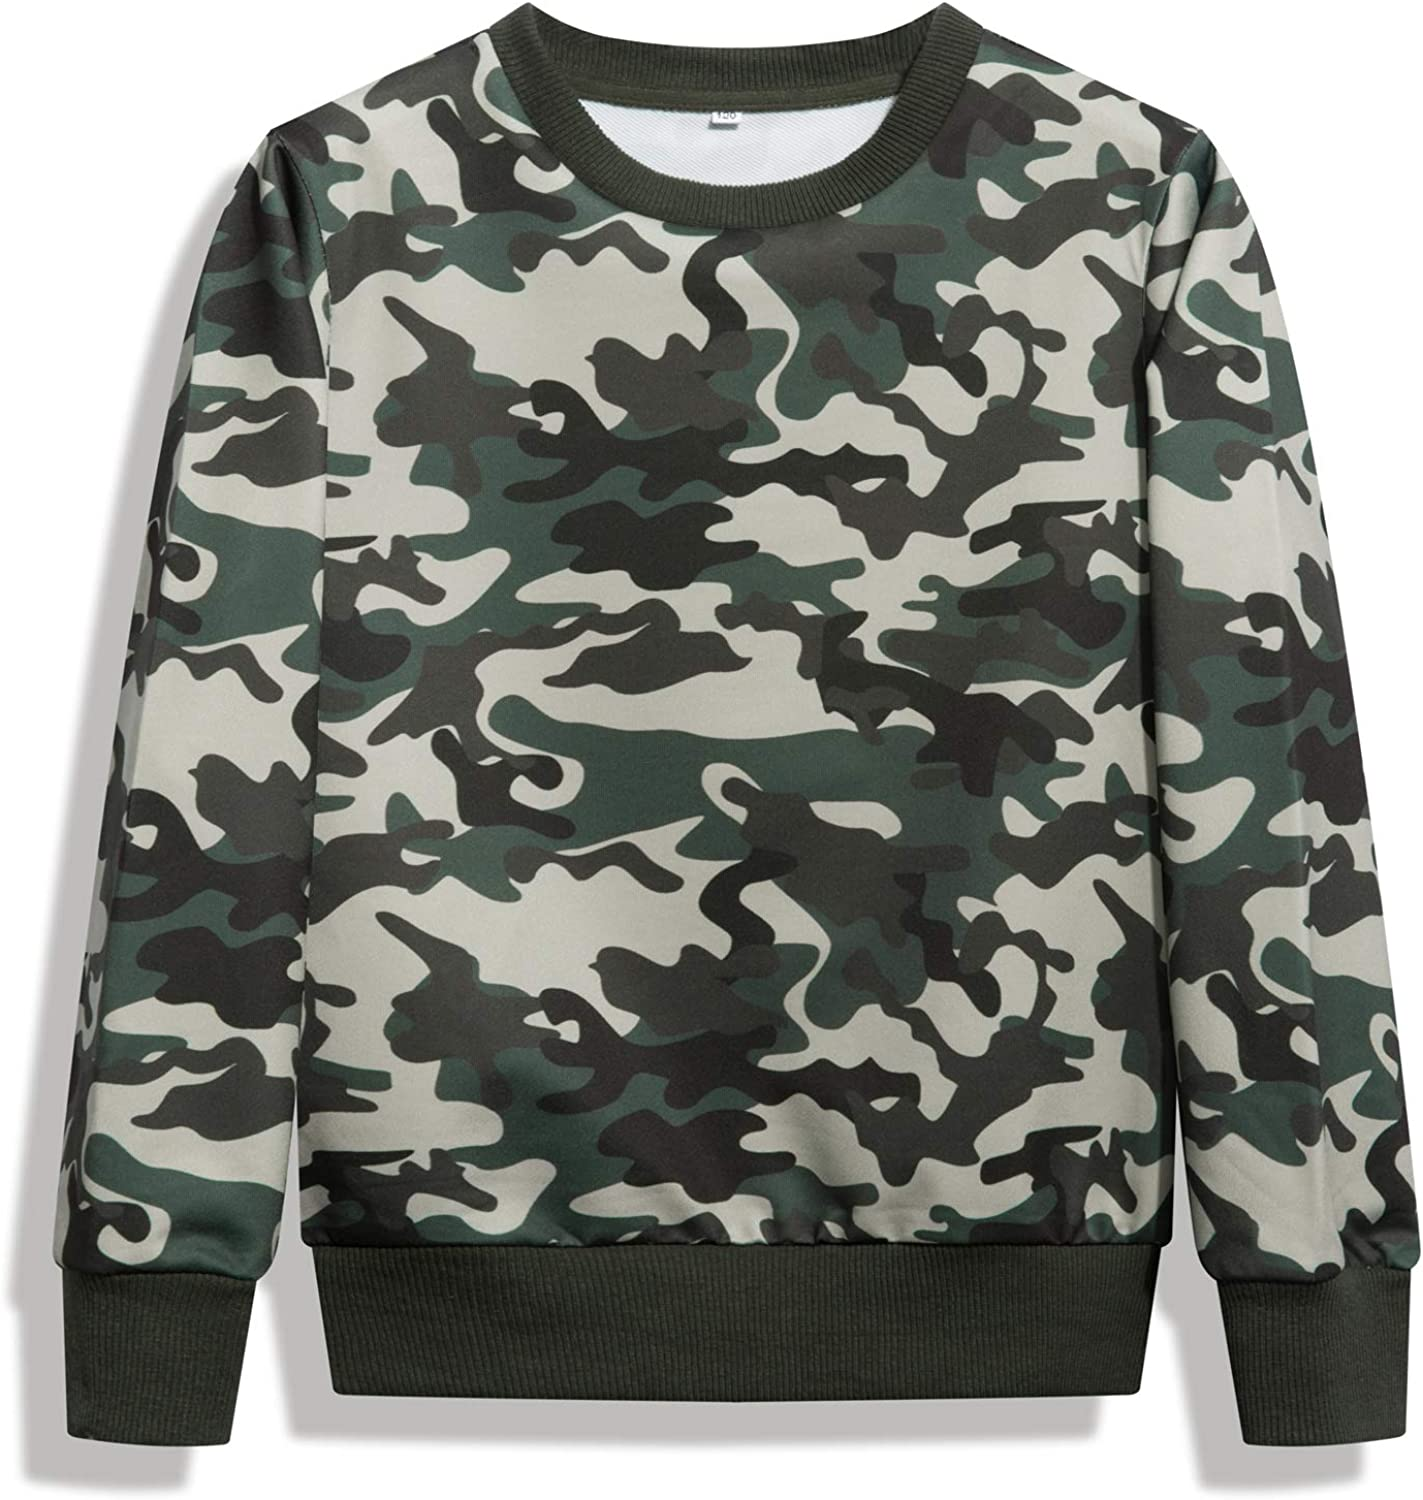 HZXVic Pullover Sweat Shirt for Boys, Casual Kids Sweatshirts, Toddler Long Sleeve Crewneck Tops: Clothing